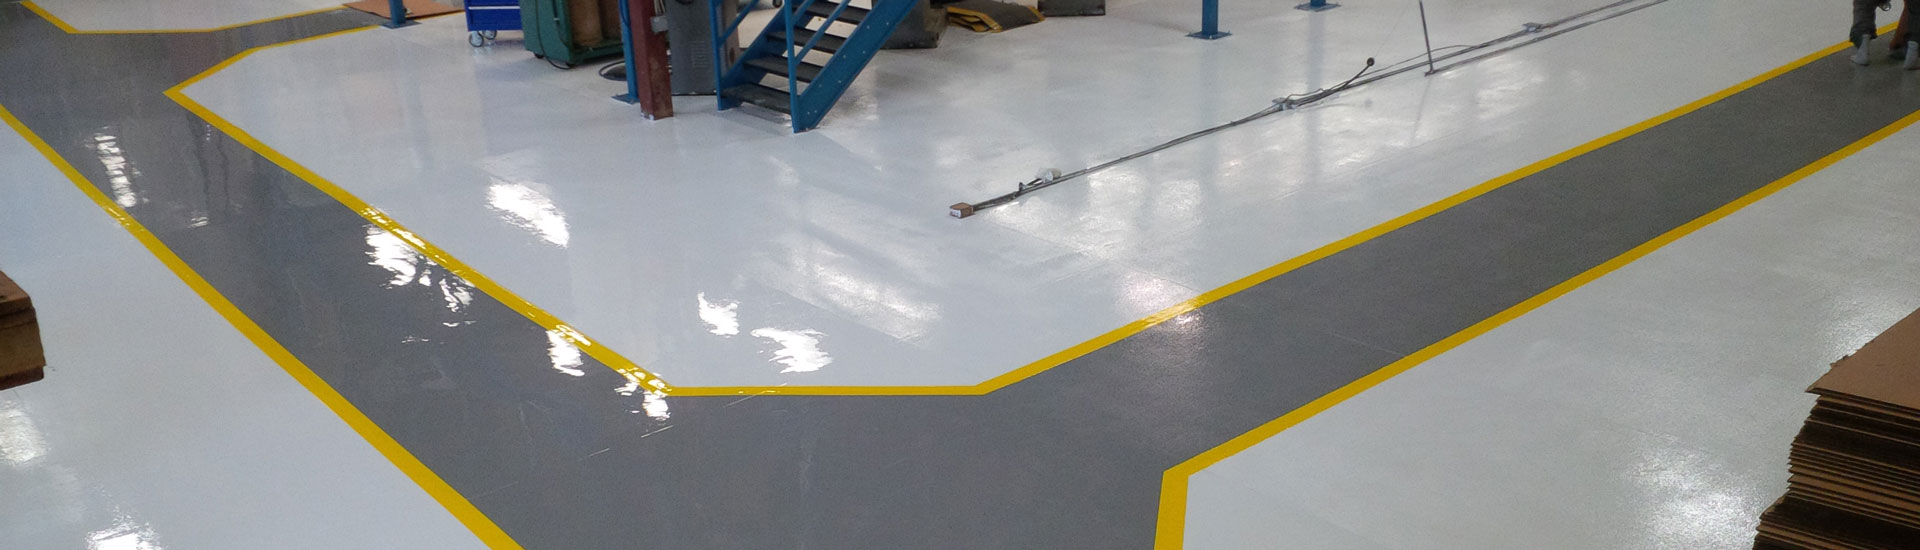 Commercial - Epoxy urethane coating